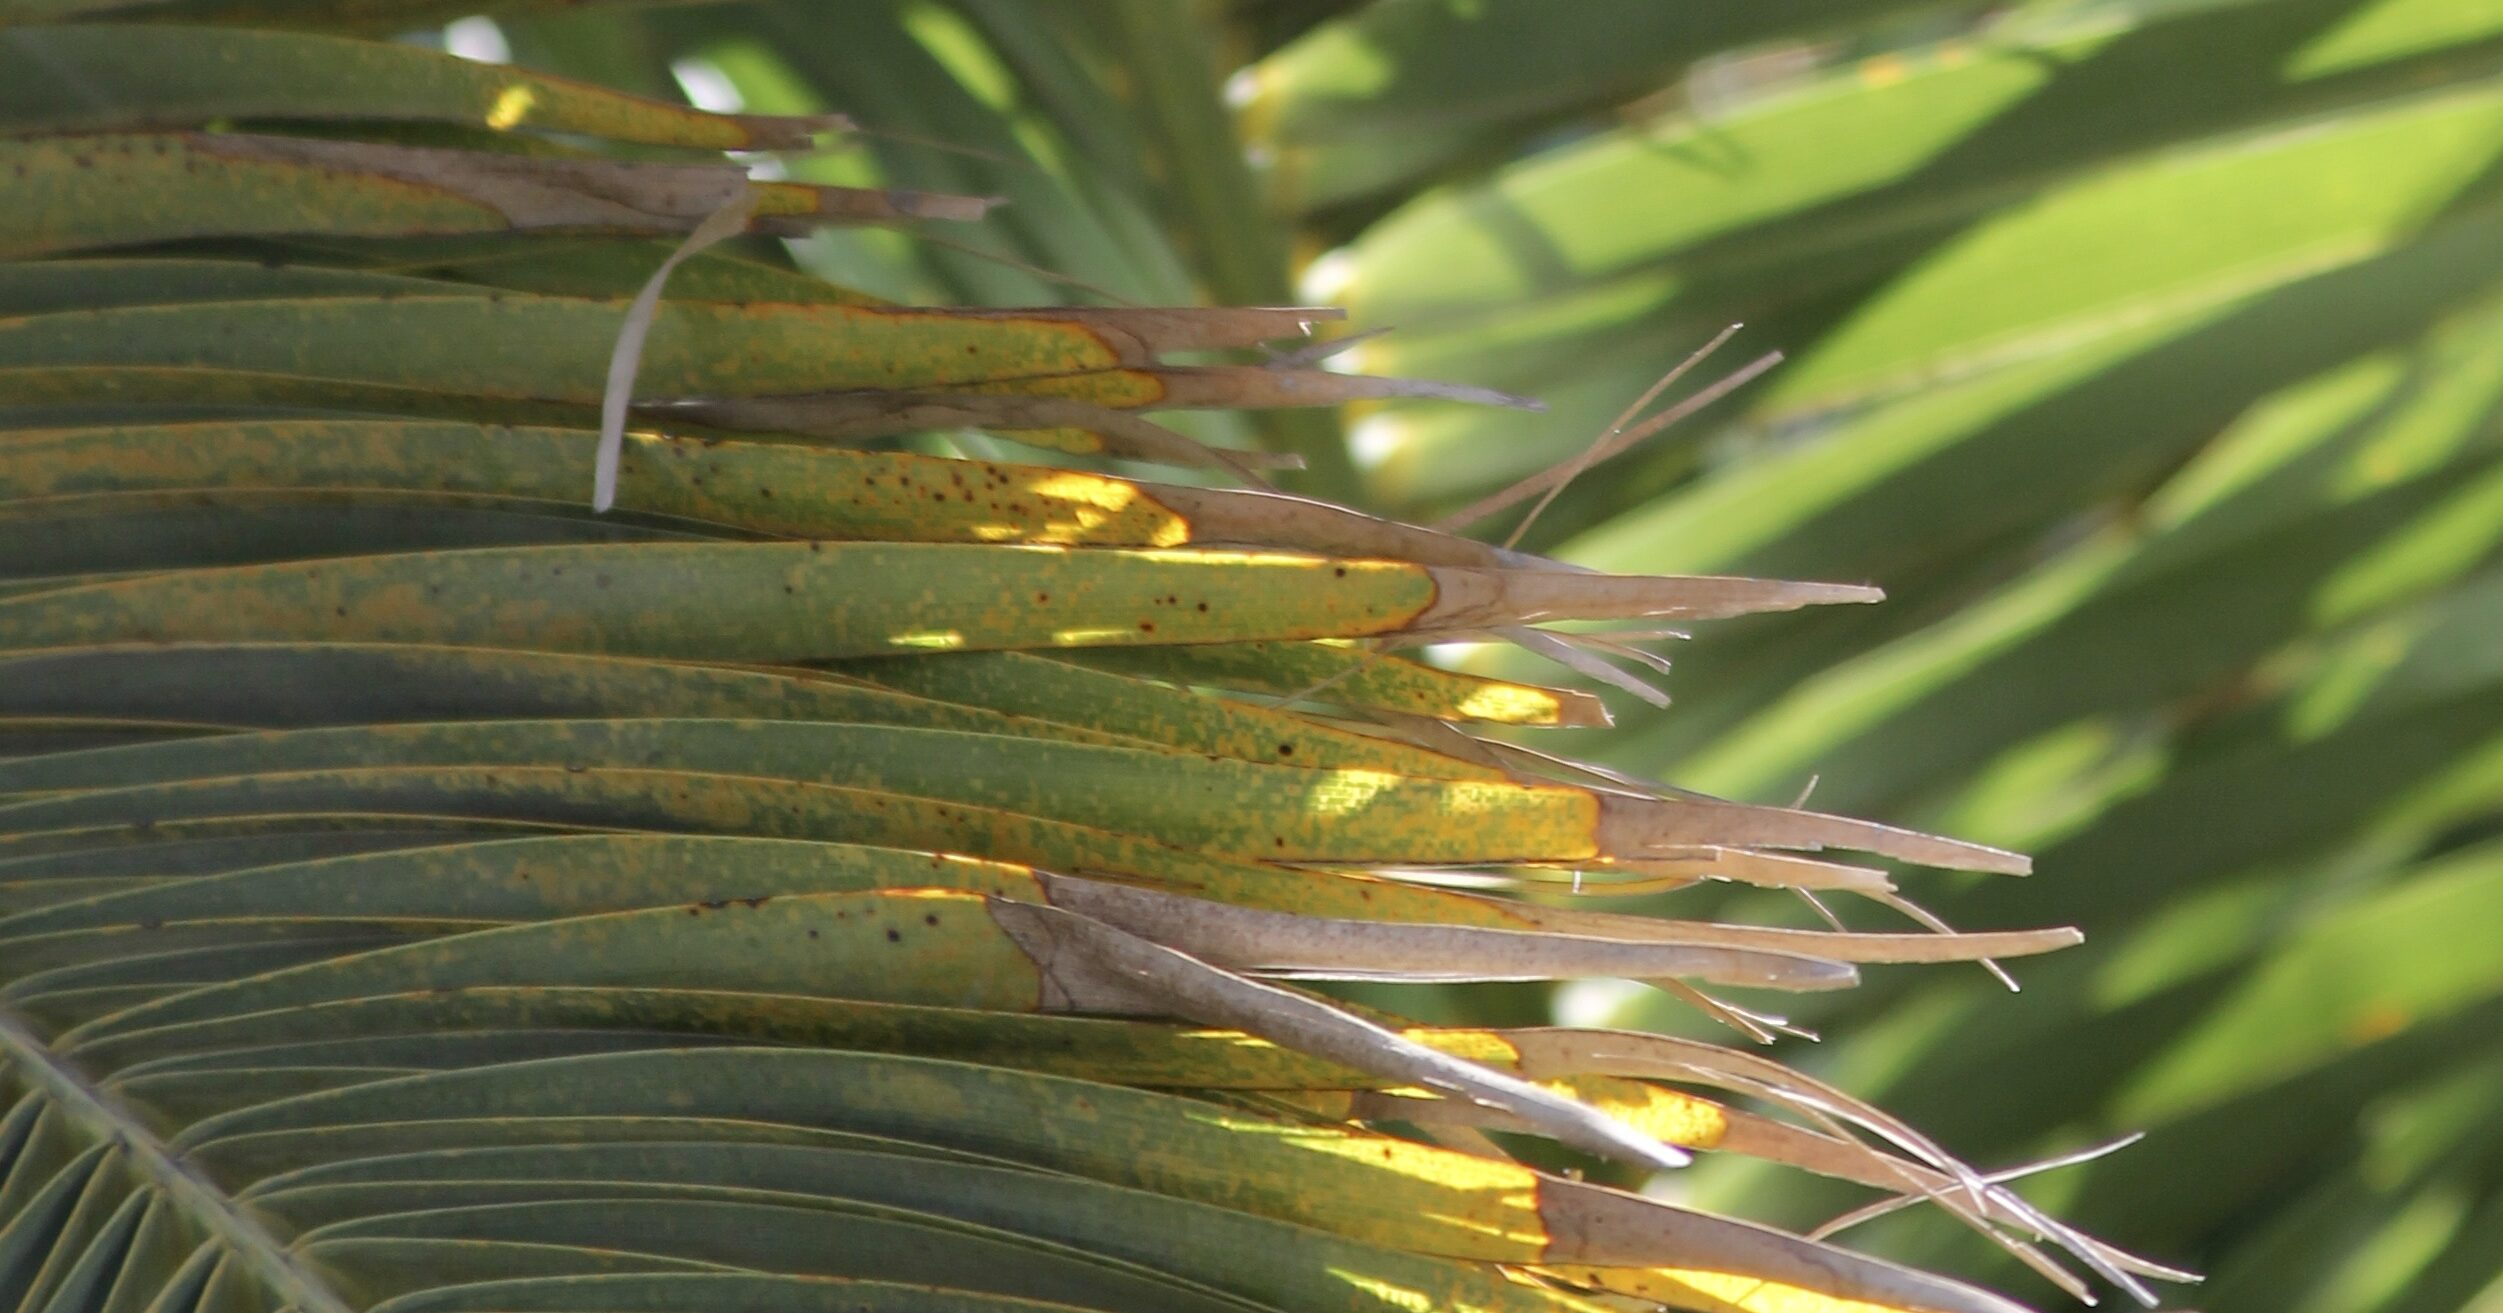 How To Fertilize Palm Trees- Palm Fronds